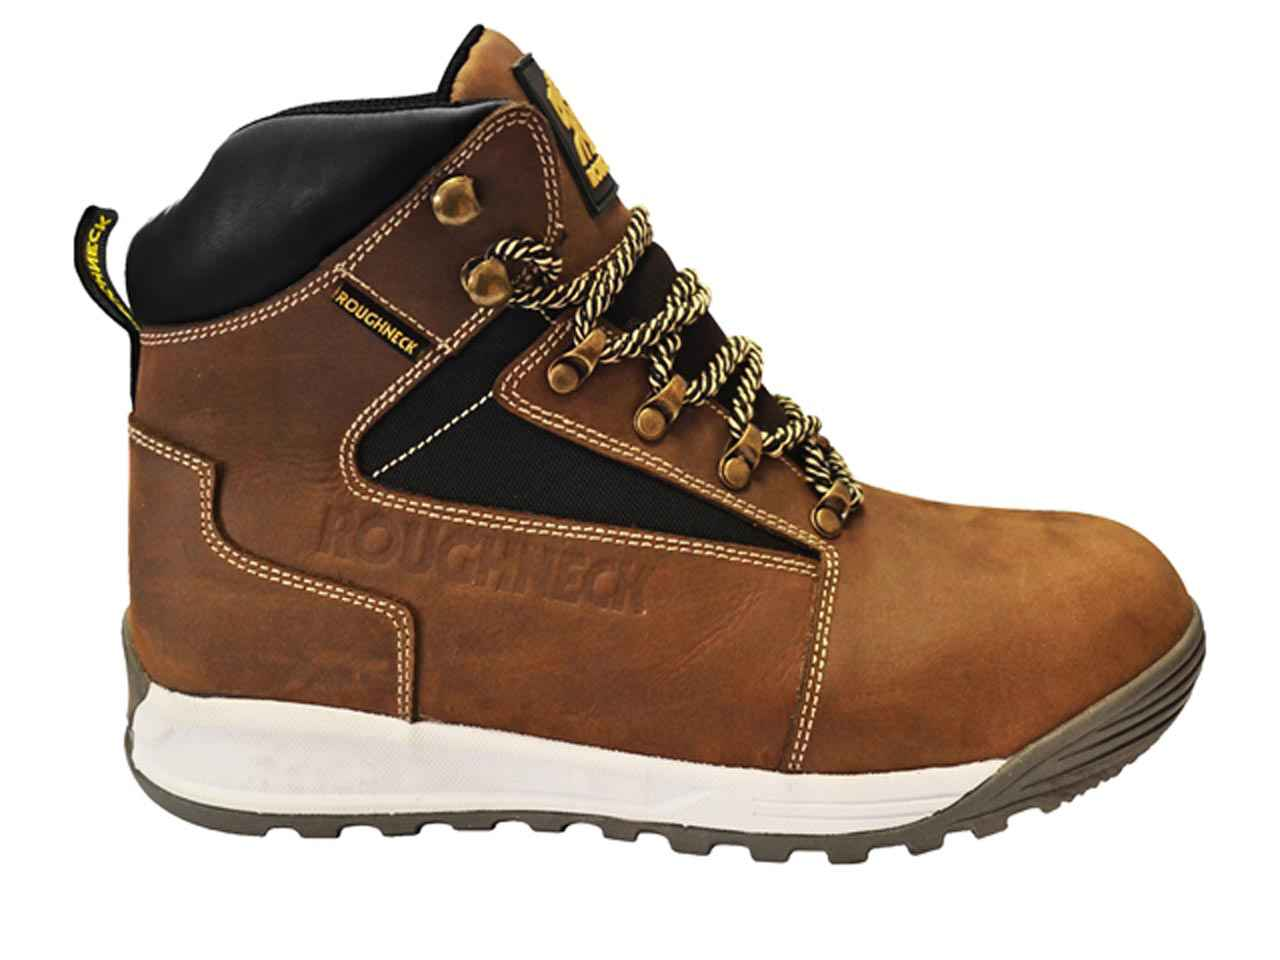 0dbb496acd6 Roughneck Sabre Brown Work Boots Various Sizes